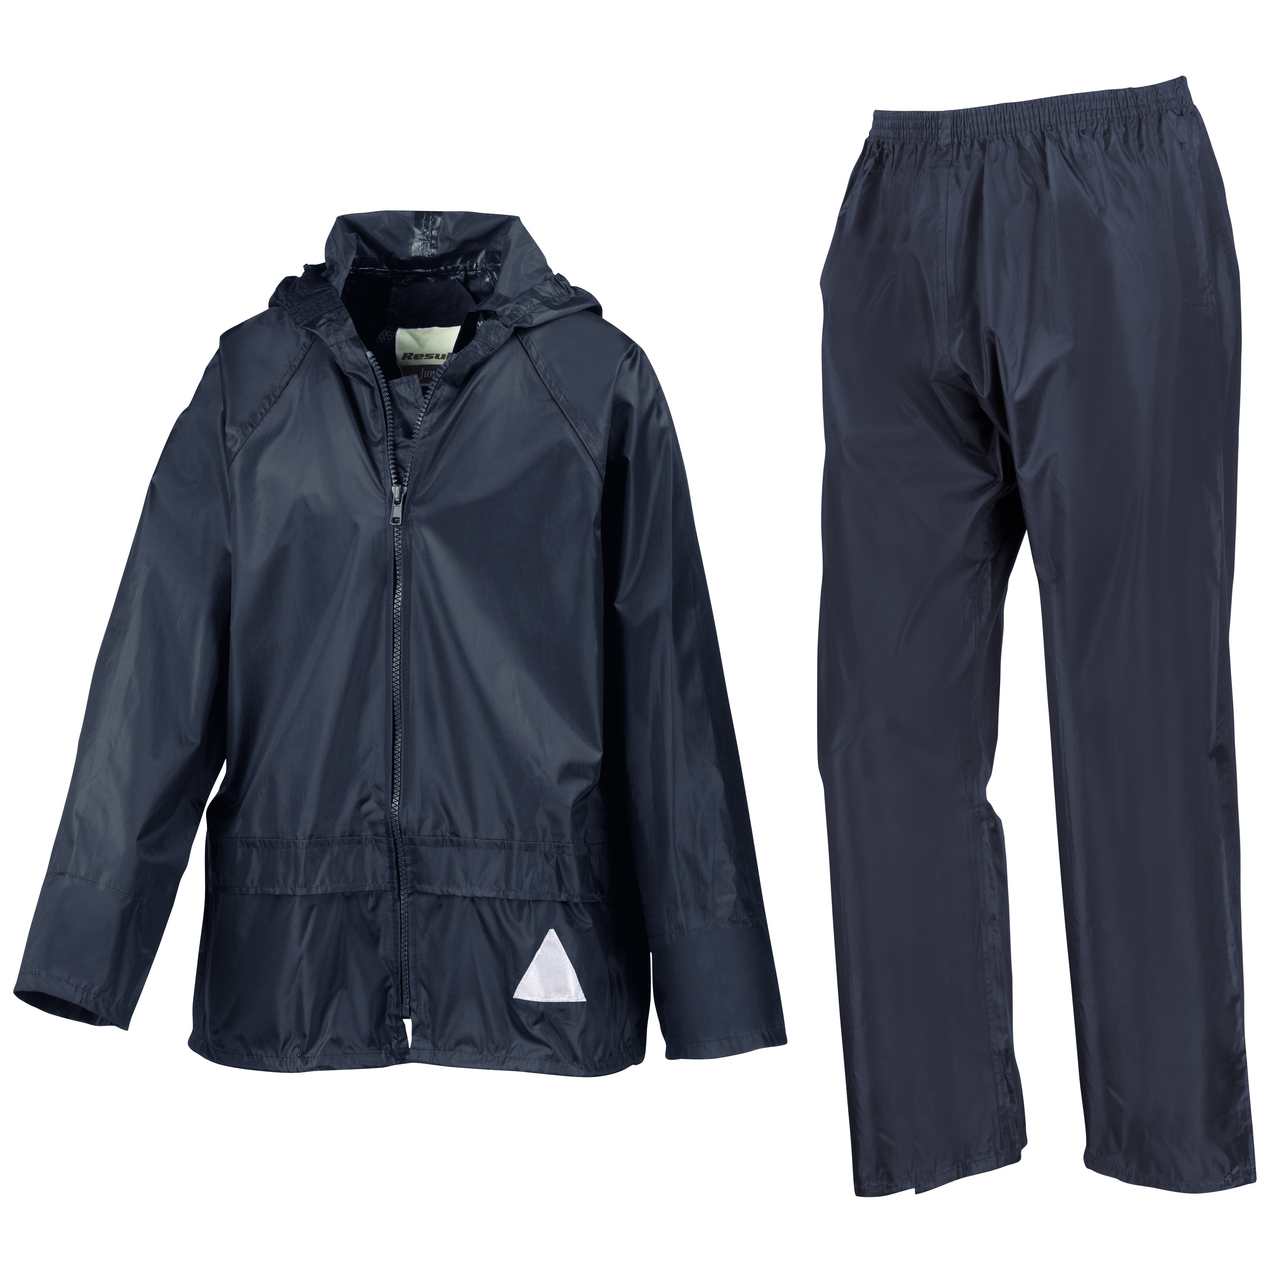 Prostar Density Cuffed Pants   RRP £20  CLEARANCE PRICES